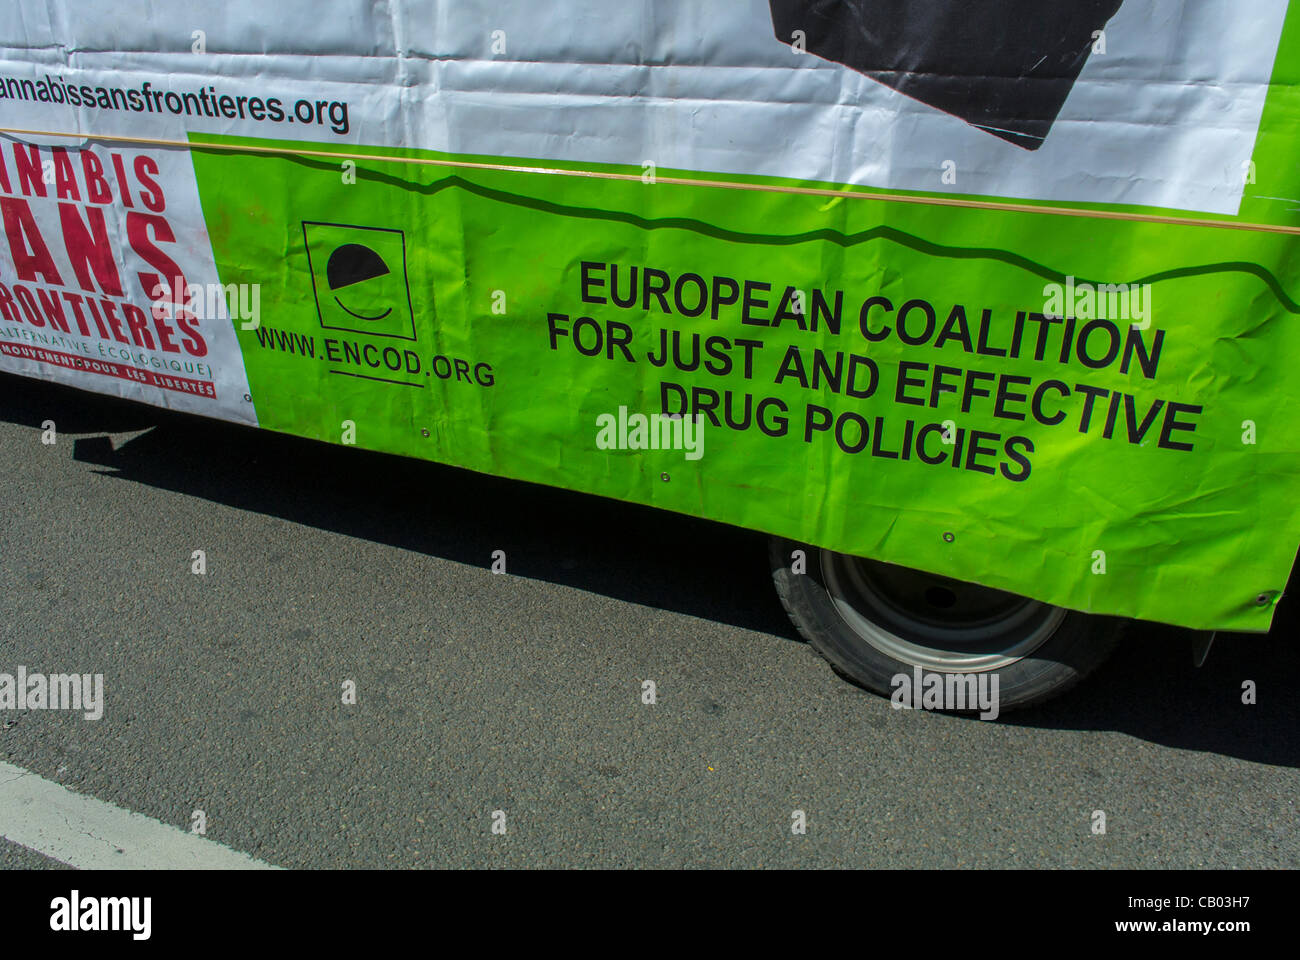 'European Coatition for Just and Effective Drug Policies' Signa on truck, at the World Cannabis March for - Stock Image